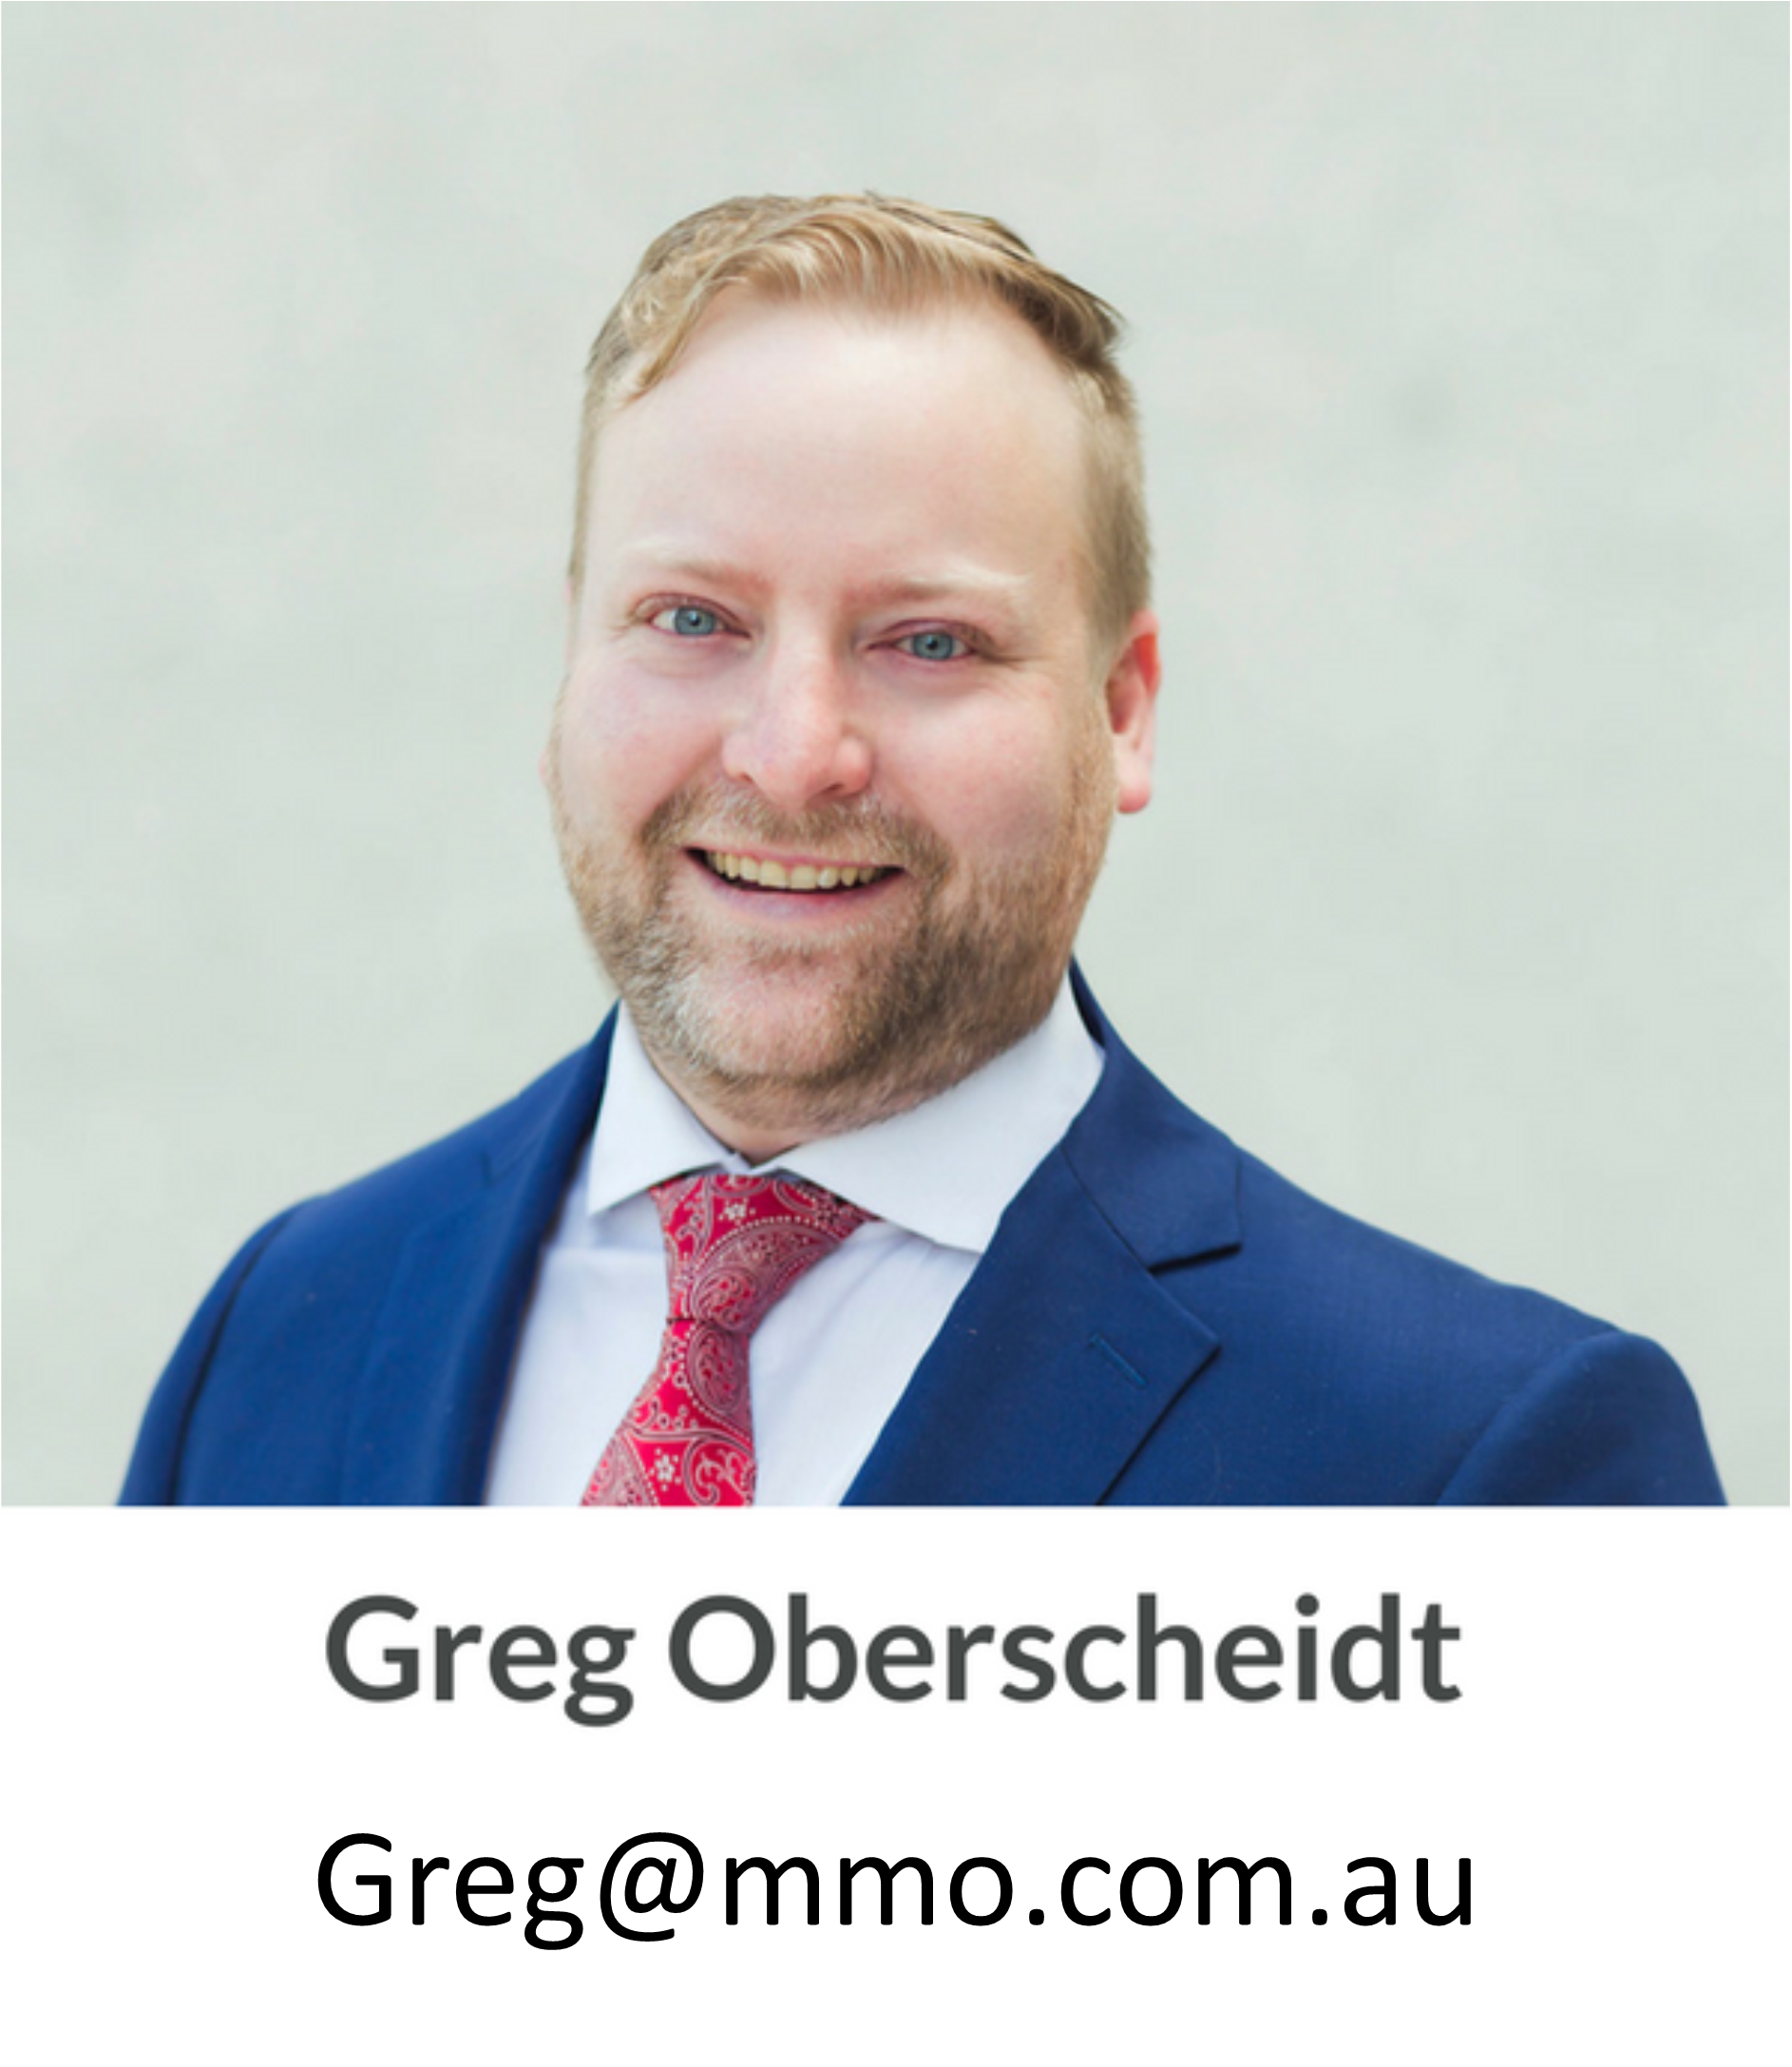 Greg Oberscheidt, MMO: Canberra's leading mortgage professionals